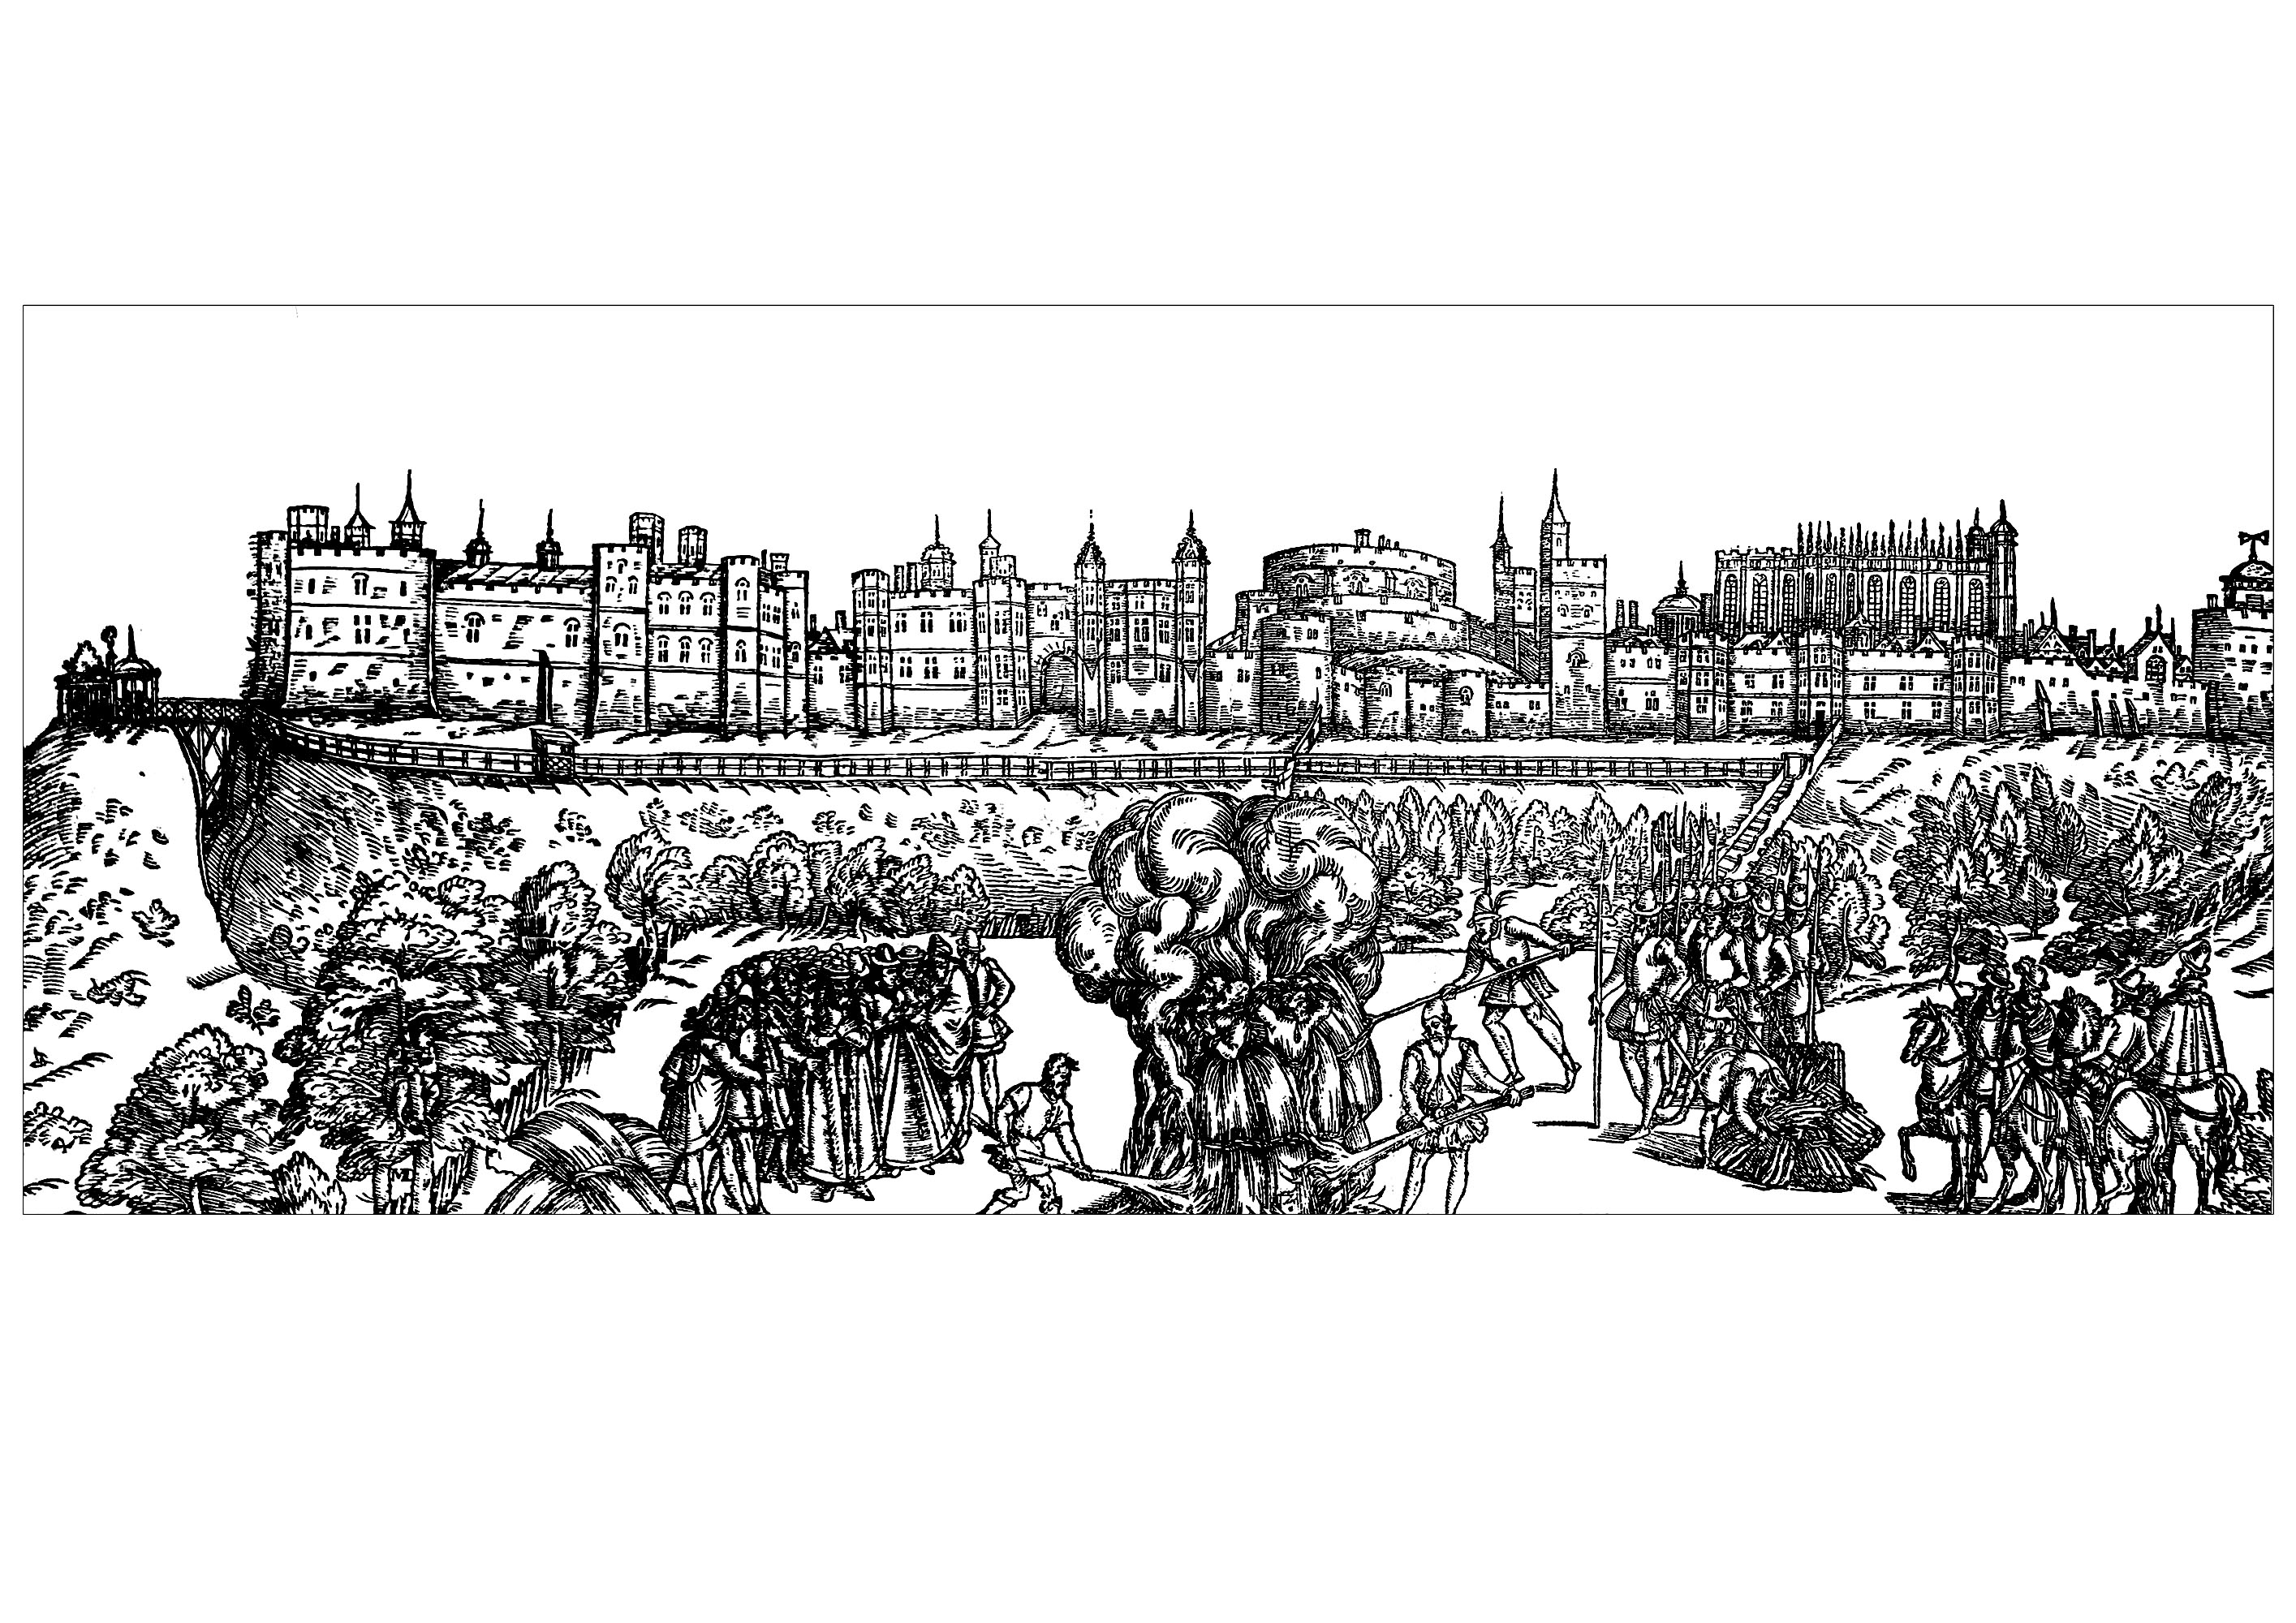 1570 drawing representing the Windsor Castle (Great Britain), the oldest and largest occupied castle in the world (by Queen Elisabeth II)